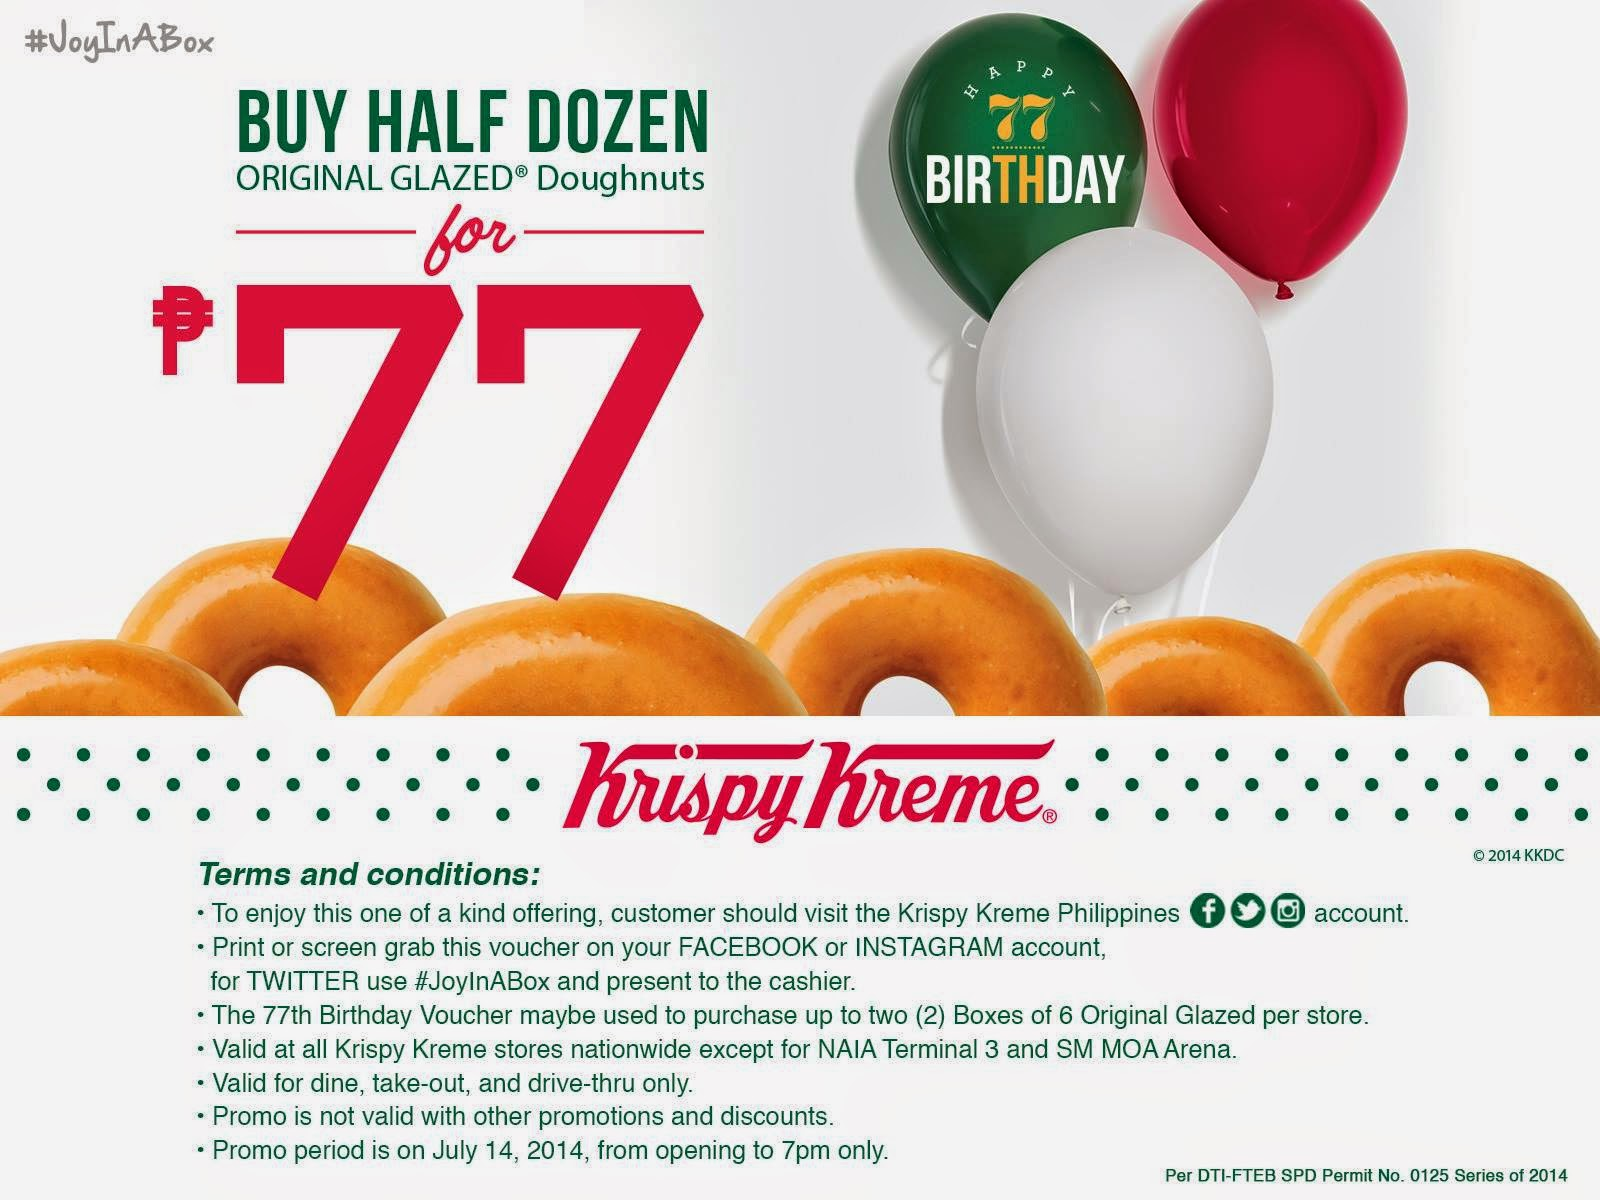 Krispy Kreme #JoyInABOx Voucher, Krispy Kreme's 77th birthday